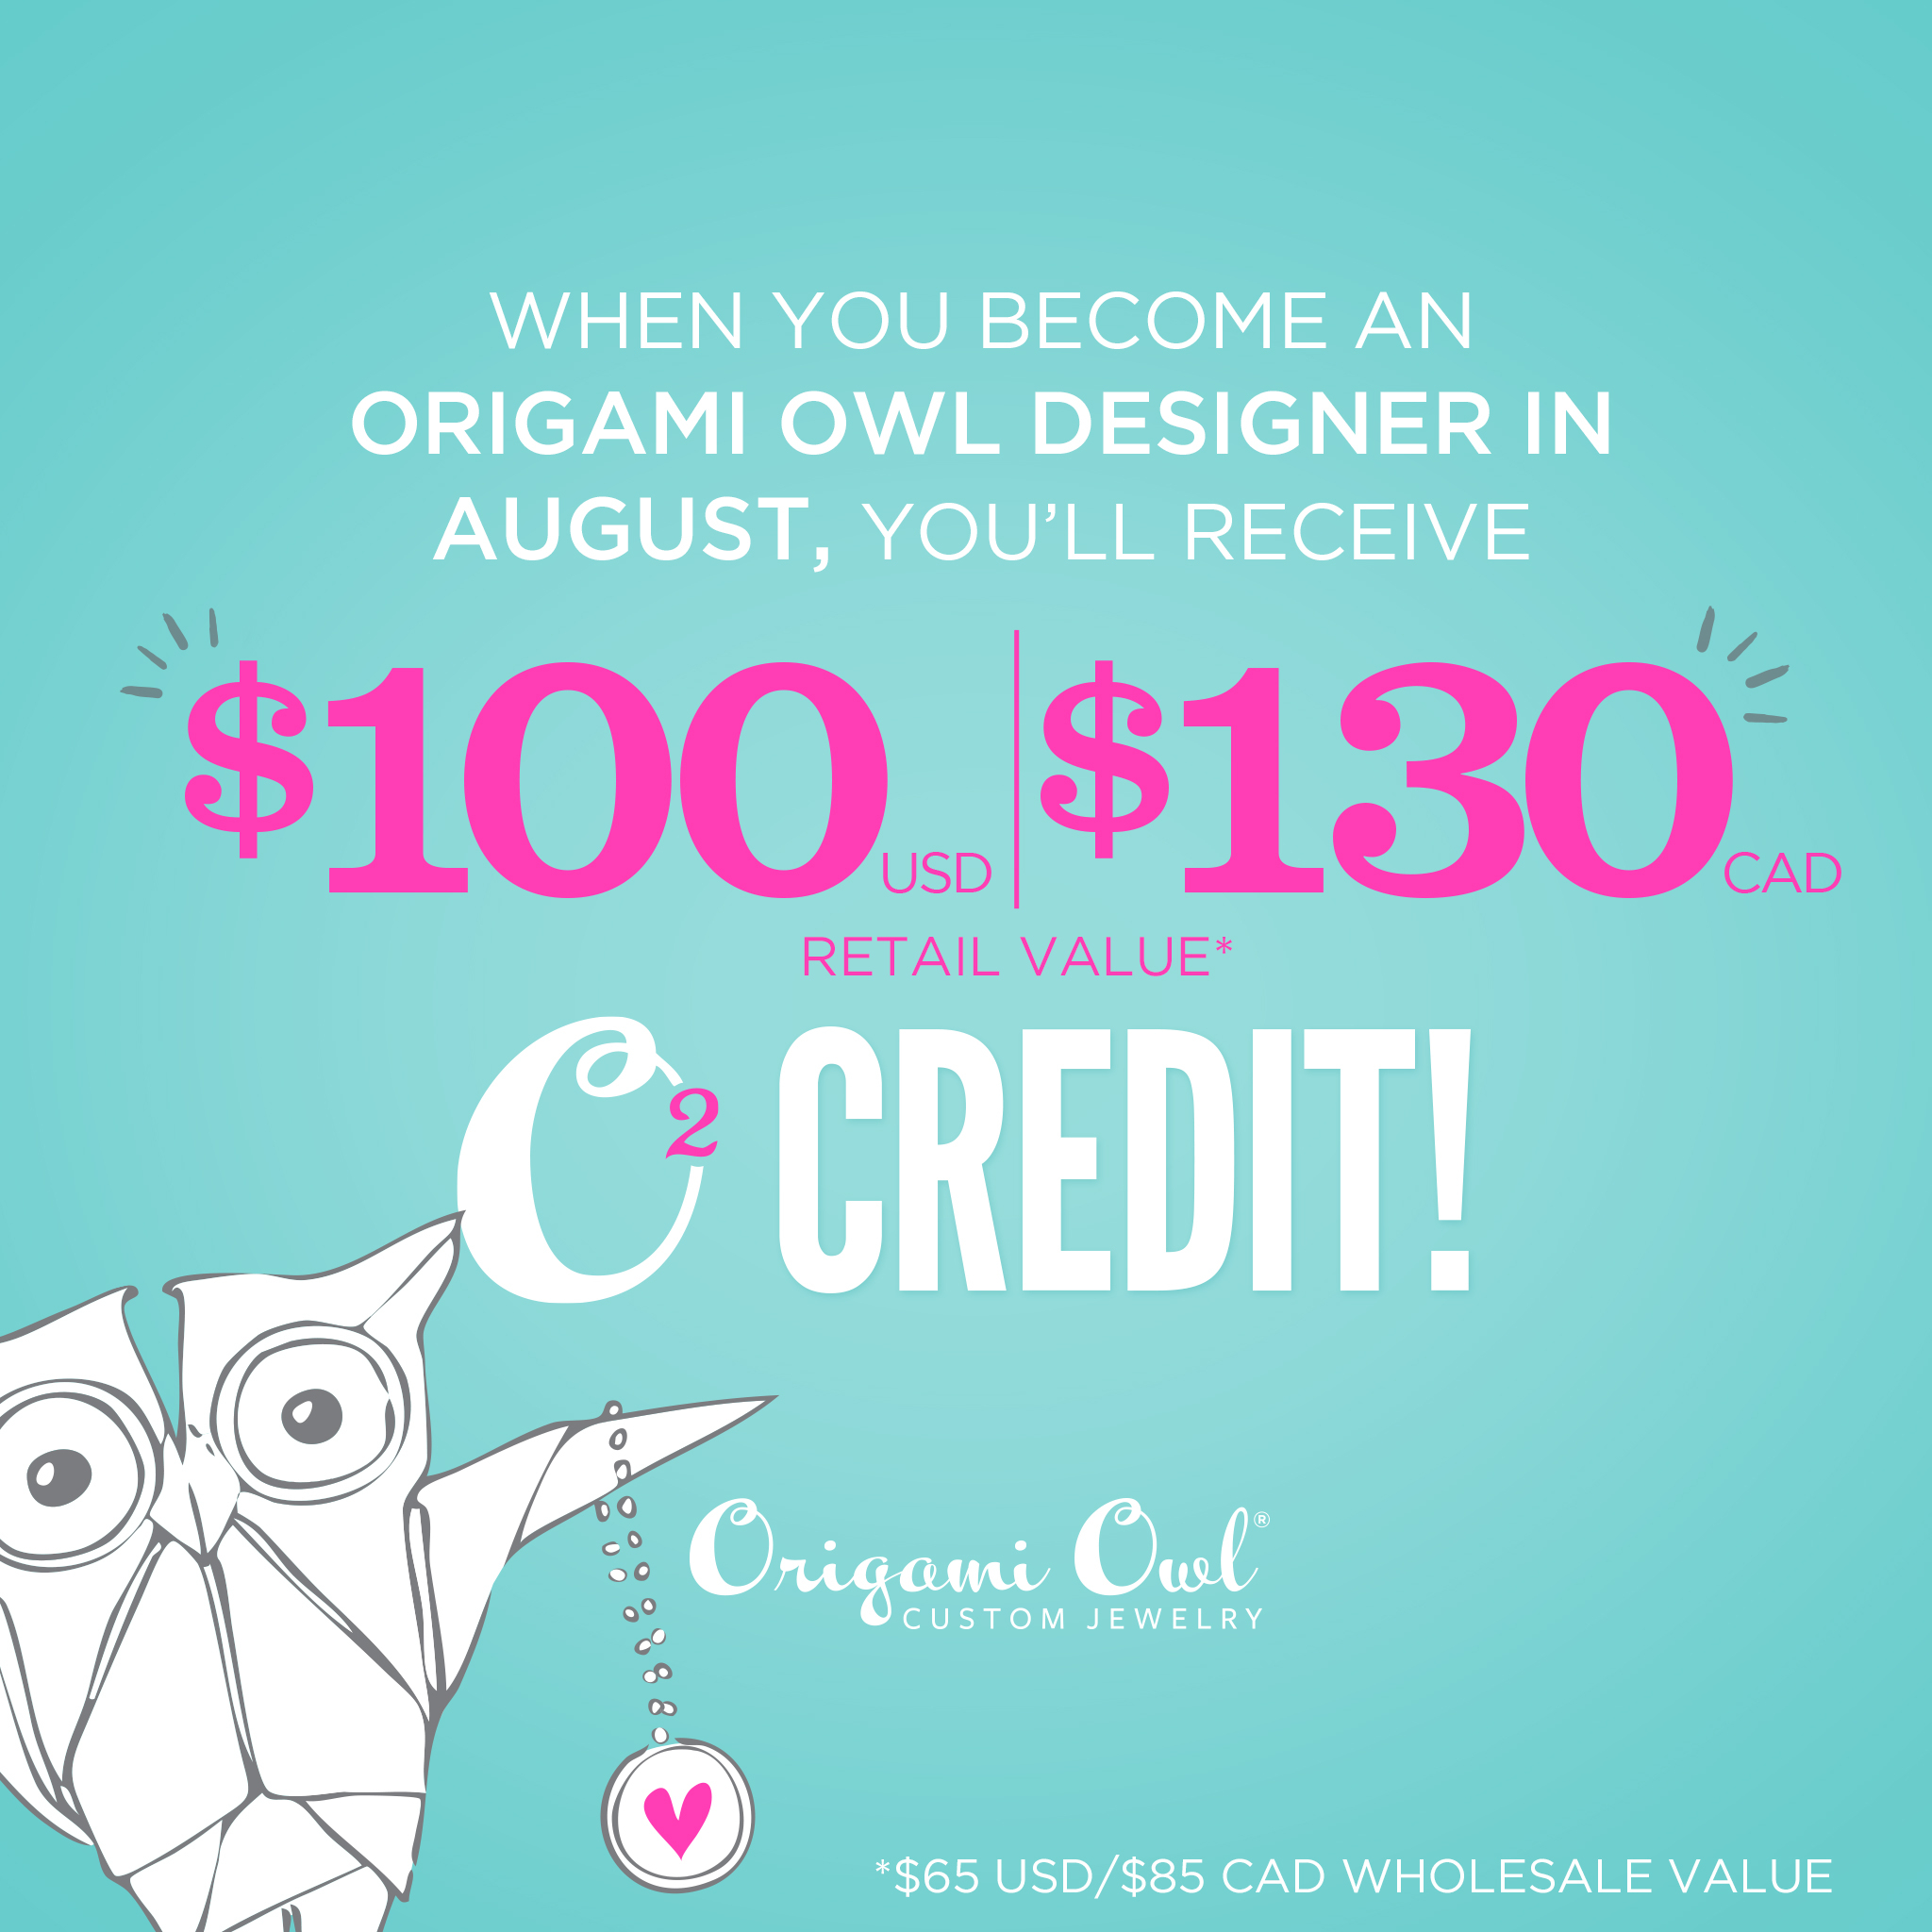 Origami Owl Designer Login New August Exclusives To Capture The Hearts Of Your Customers